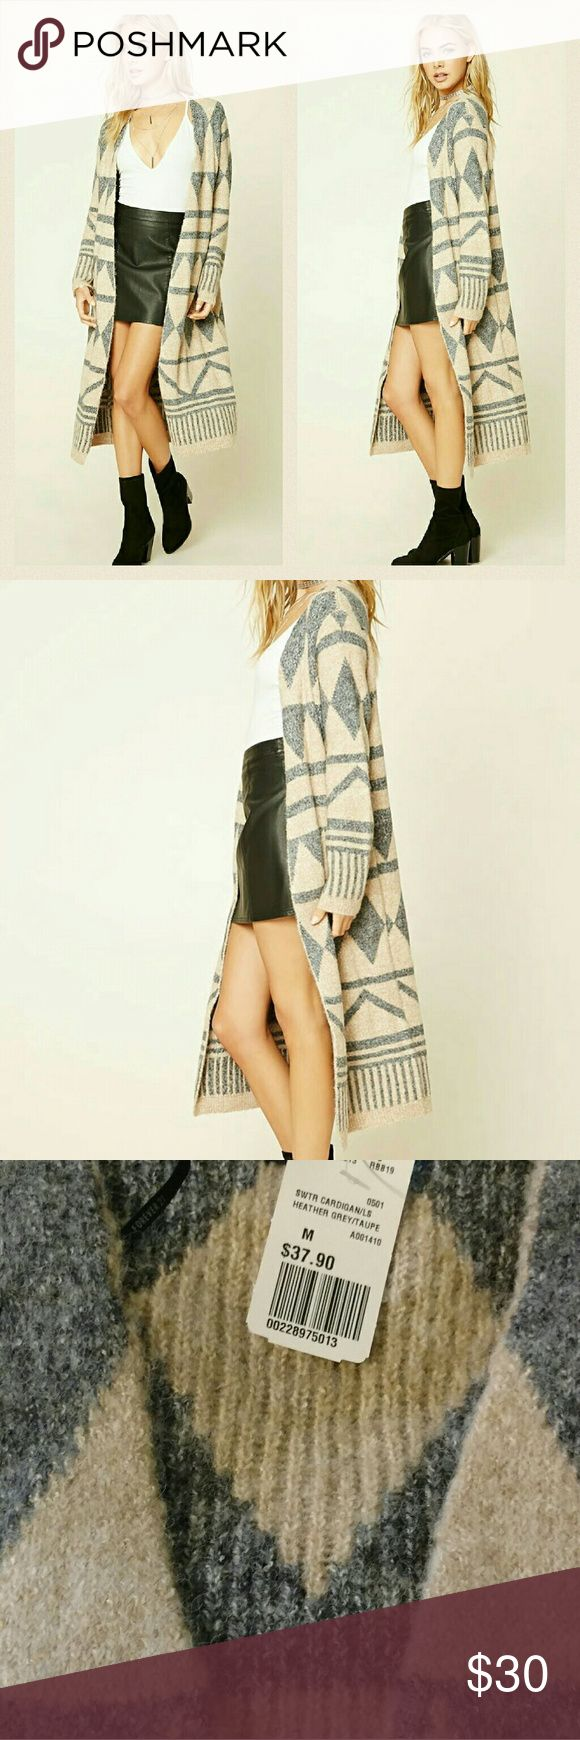 """Tribal Cardigan Tribal pattern, knit cardigan, open front, long sleeves, and longline silhouette. Length 44"""", sleeve 23"""", shoulders 16"""". Heather grey and taupe Forever 21 Sweaters Cardigans"""